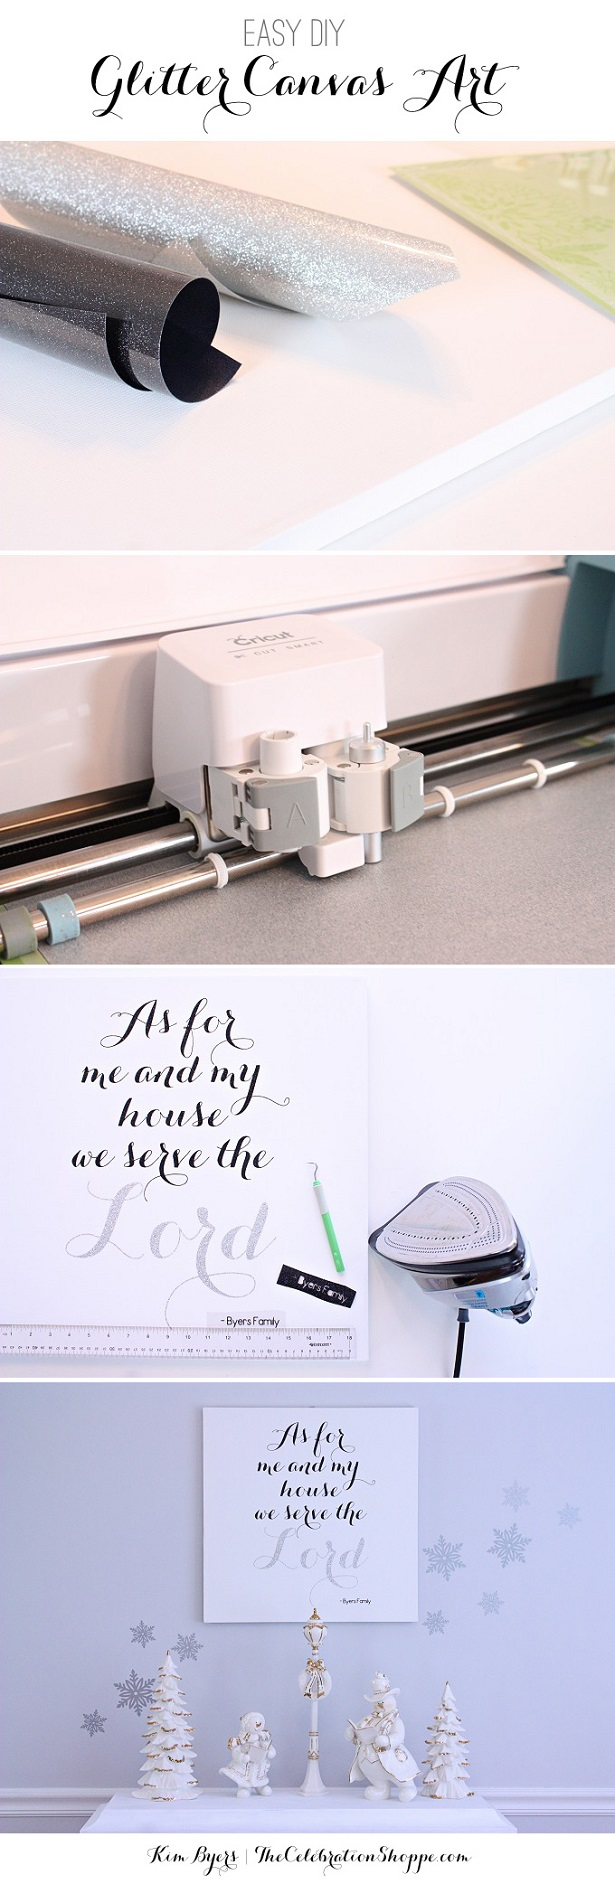 DIY Canvas Art | As For Me And My House We Serve The Lord | @kimbyers TheCelebrationShoppe.com